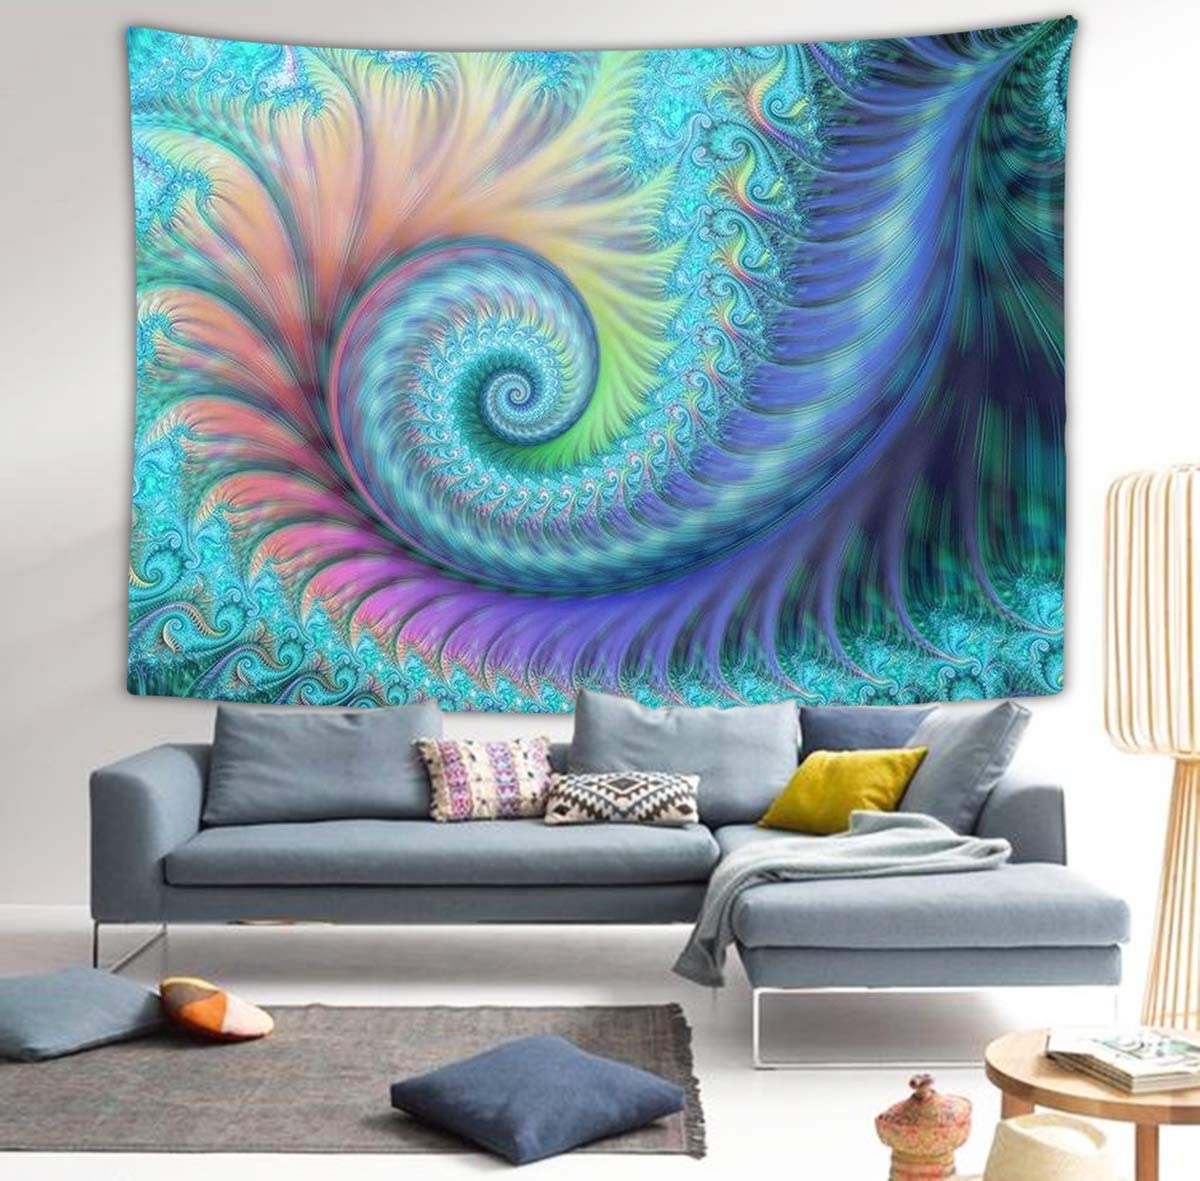 NiYoung Fractal Turquoise Octopus Wall Tapestry Hippie Art Tapestry Wall Hanging Home Decor Extra Large tablecloths 60×90 inches for Bedroom Living Room Dorm Room